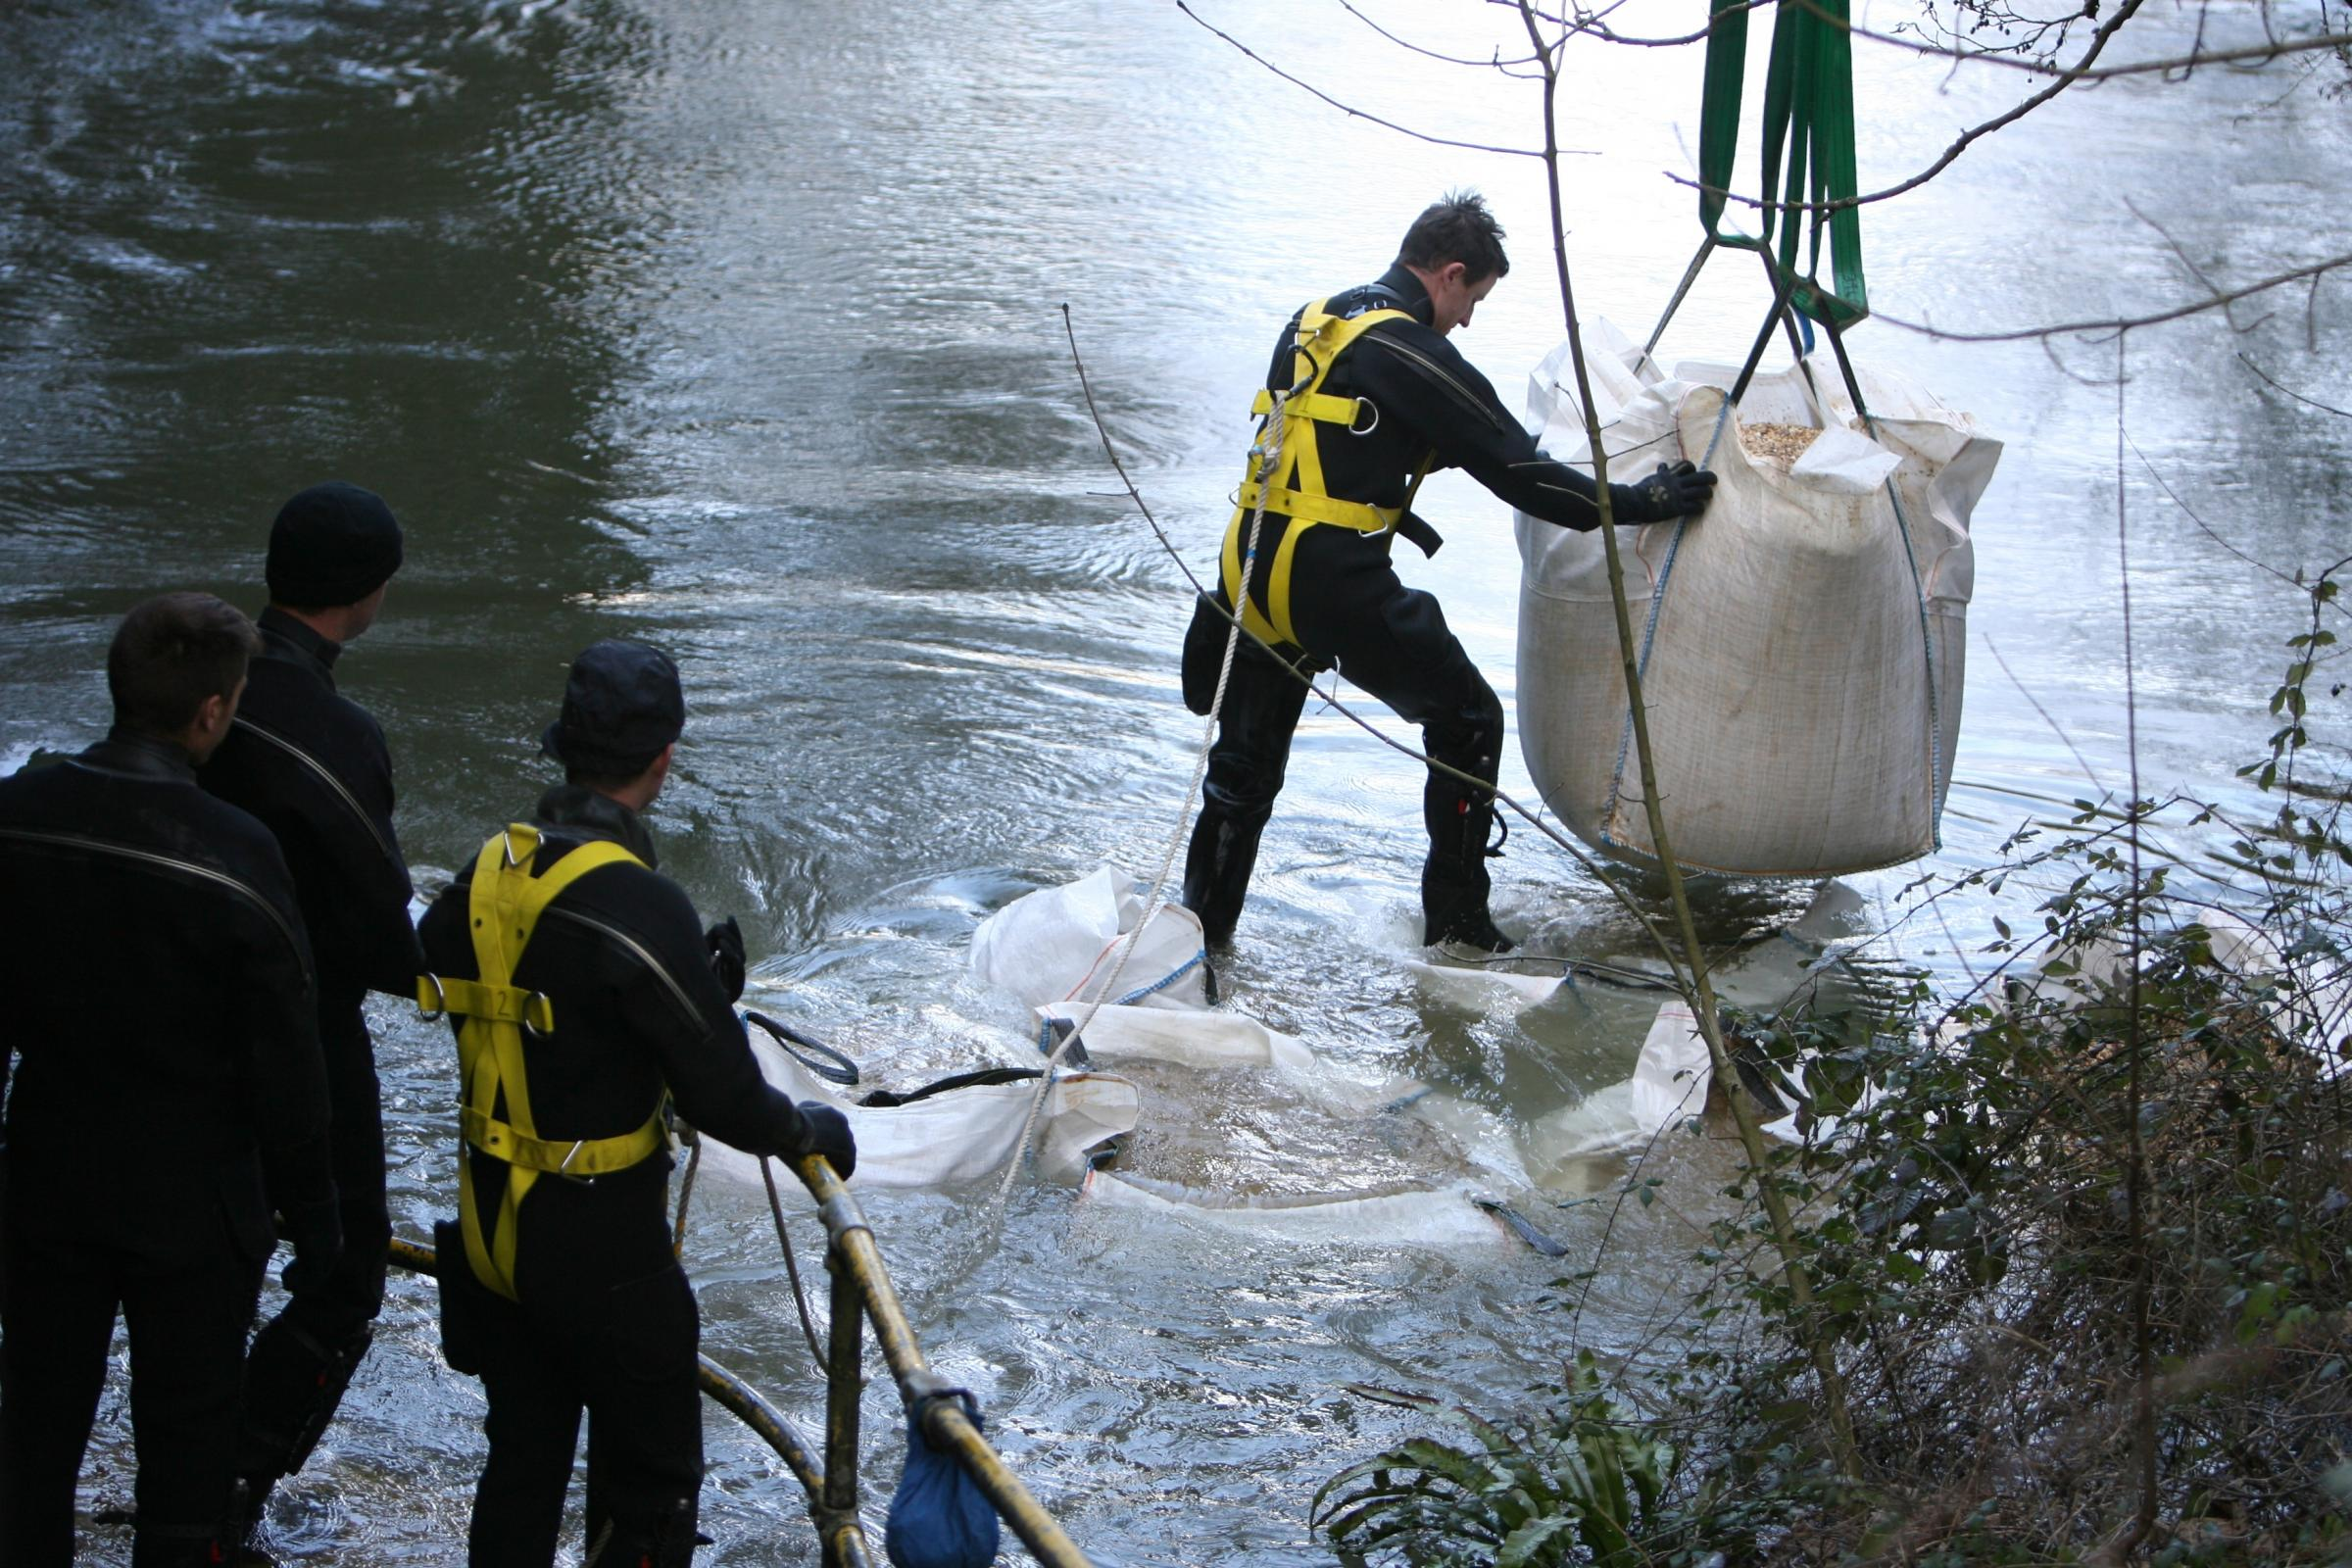 Army engineers lower huge bags of gravel into the River Itchen at Kings Worthy in an attempt to slow the flow of water downstream